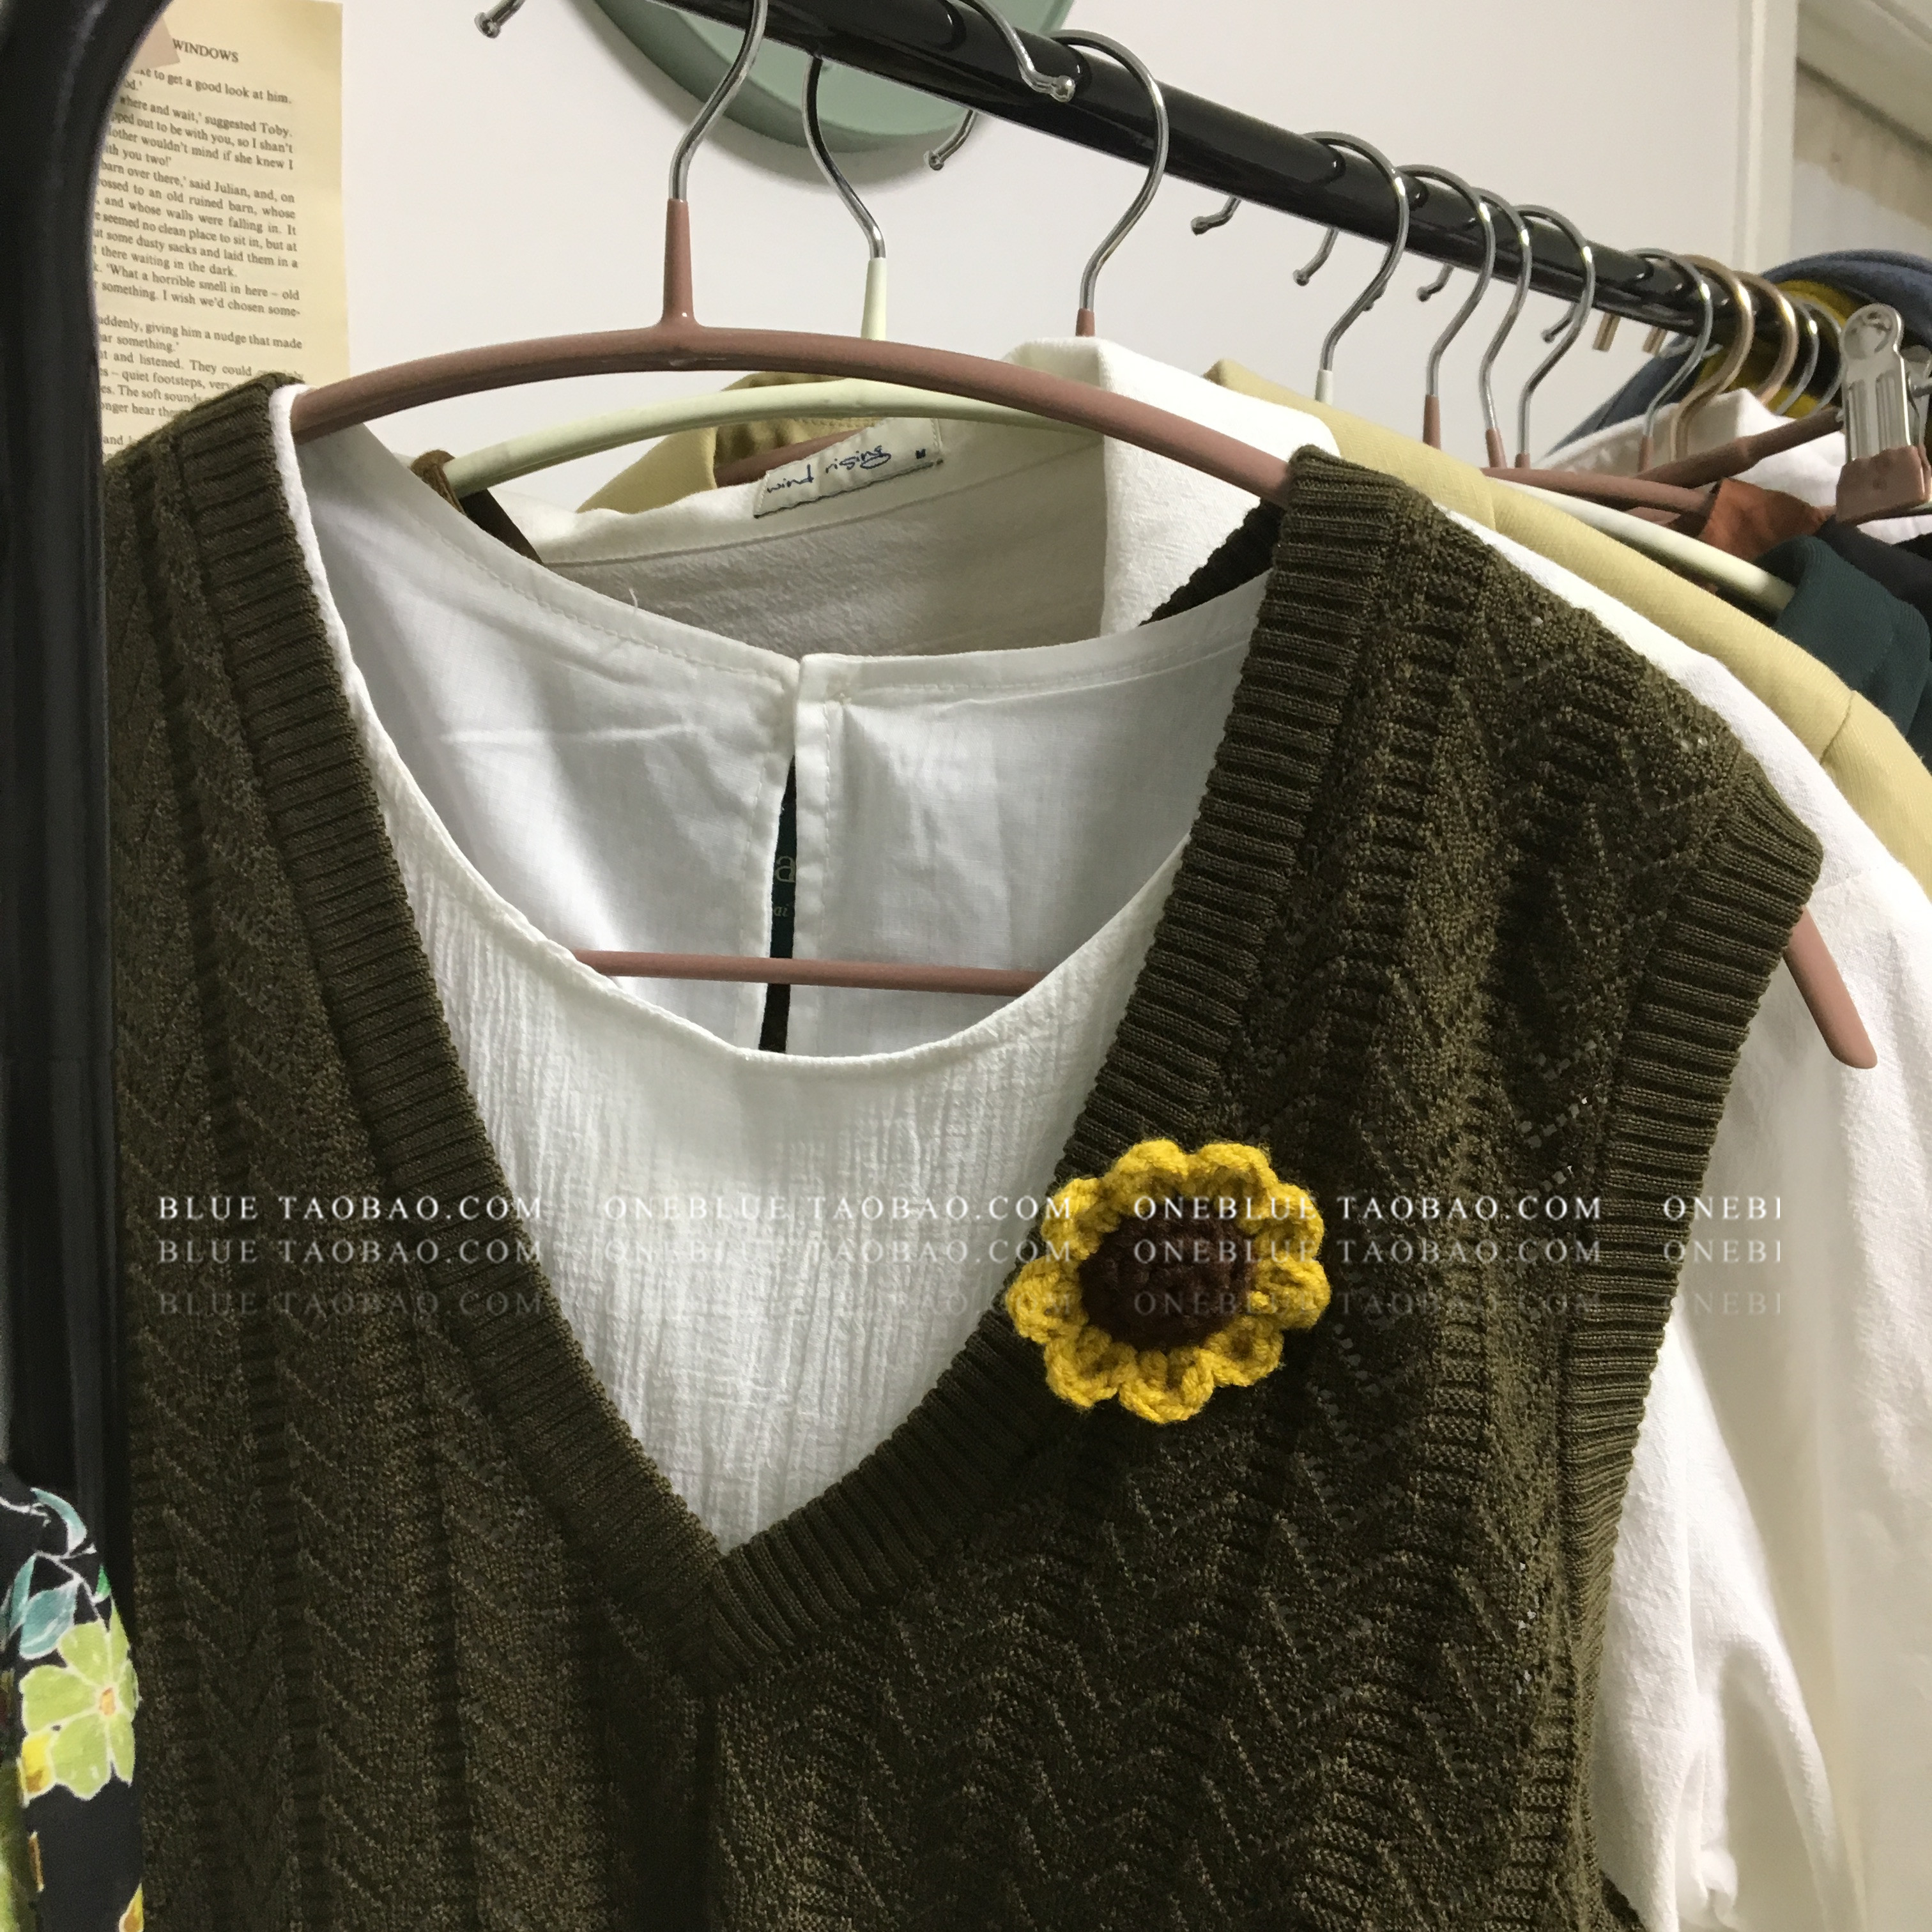 A lovely sunflower Brooch [oneblue] knitted with pure hand knitting wool